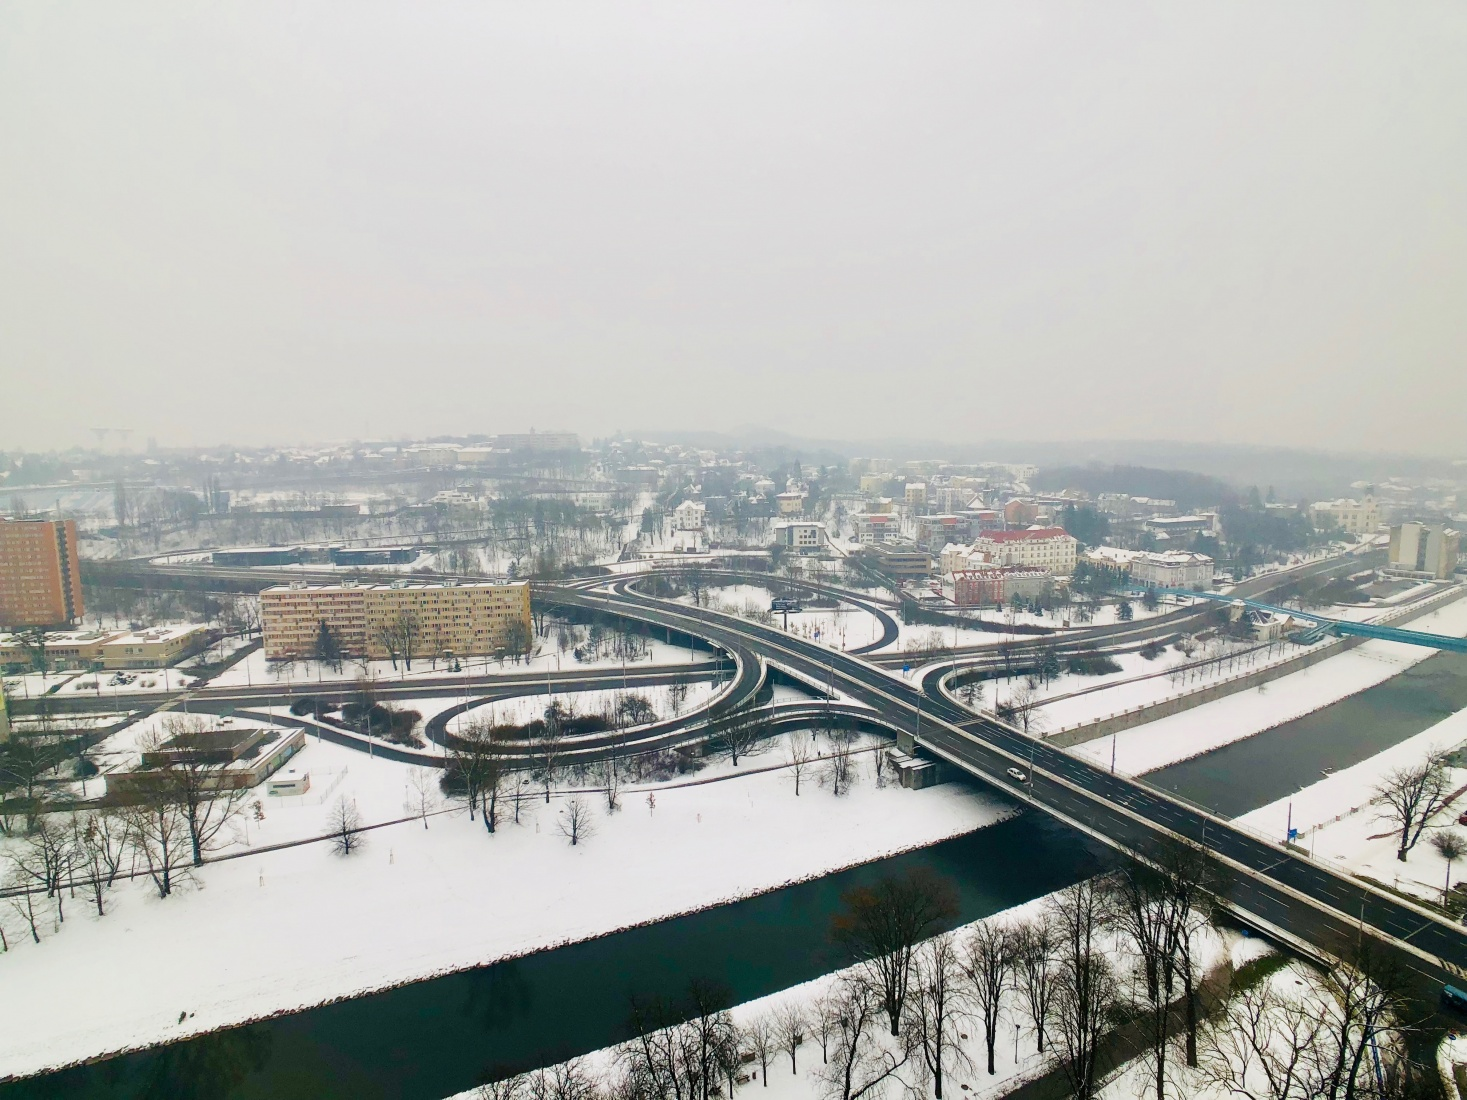 Looking out over the Ostravice River to the Silesian side of Ostrava, Czech Republic from the city's New Town Hall tower.